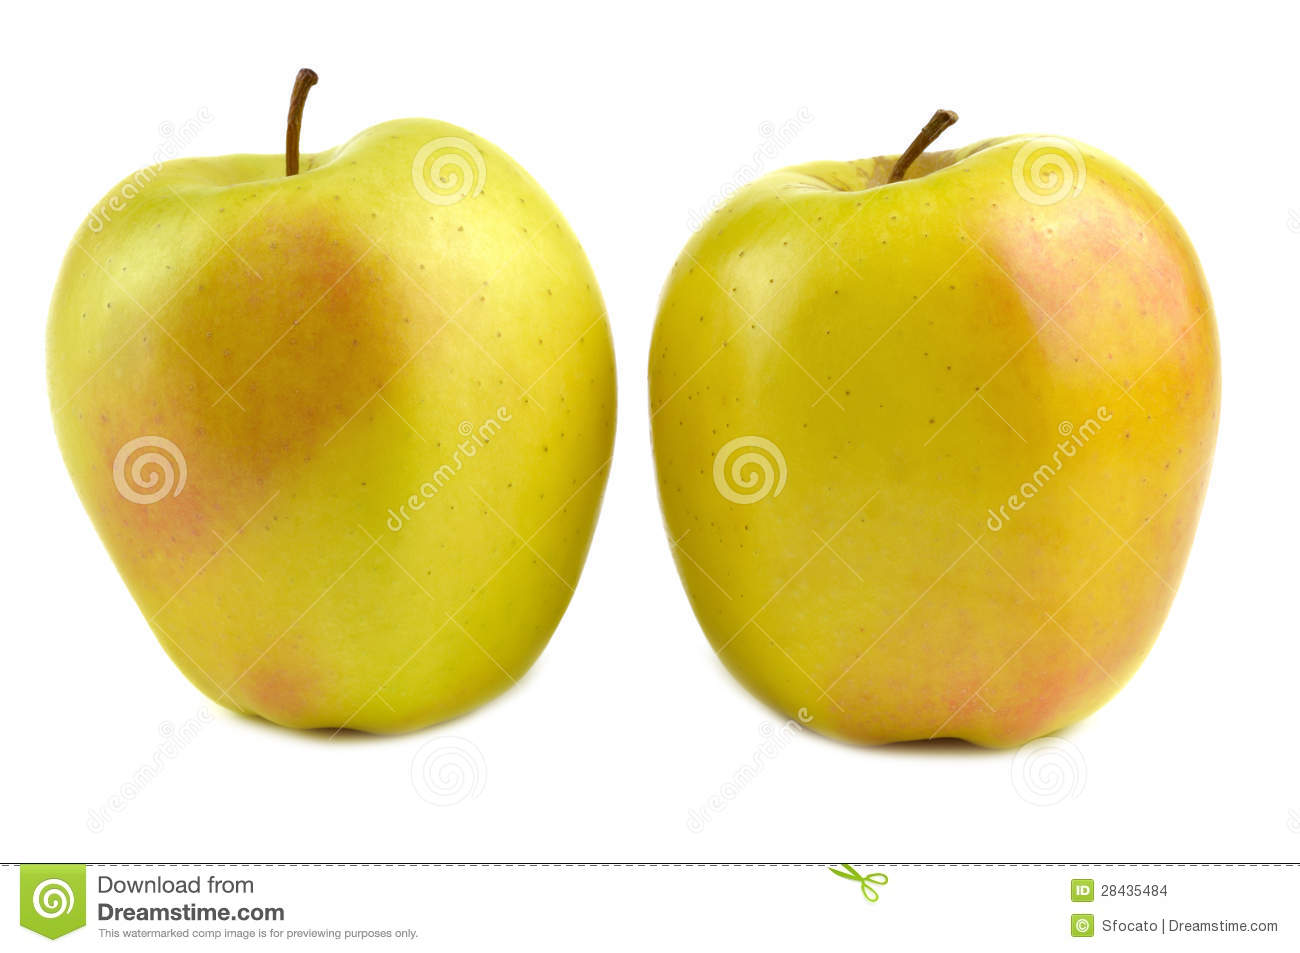 apfel golden delicious tree